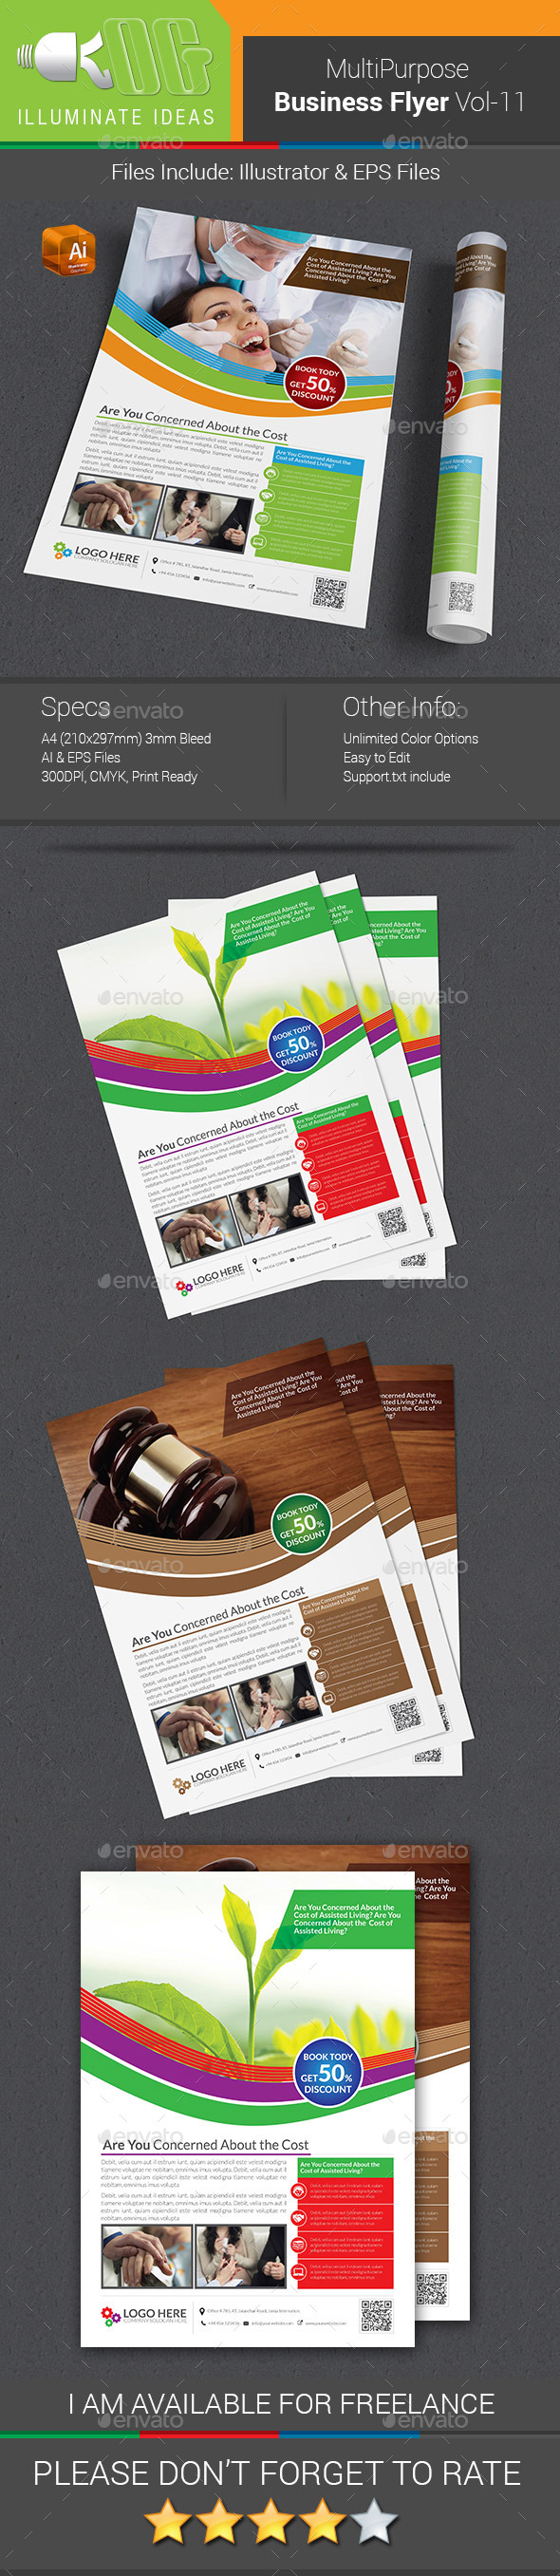 GraphicRiver Multipurpose Business Flyer Template Vol-11 10143598